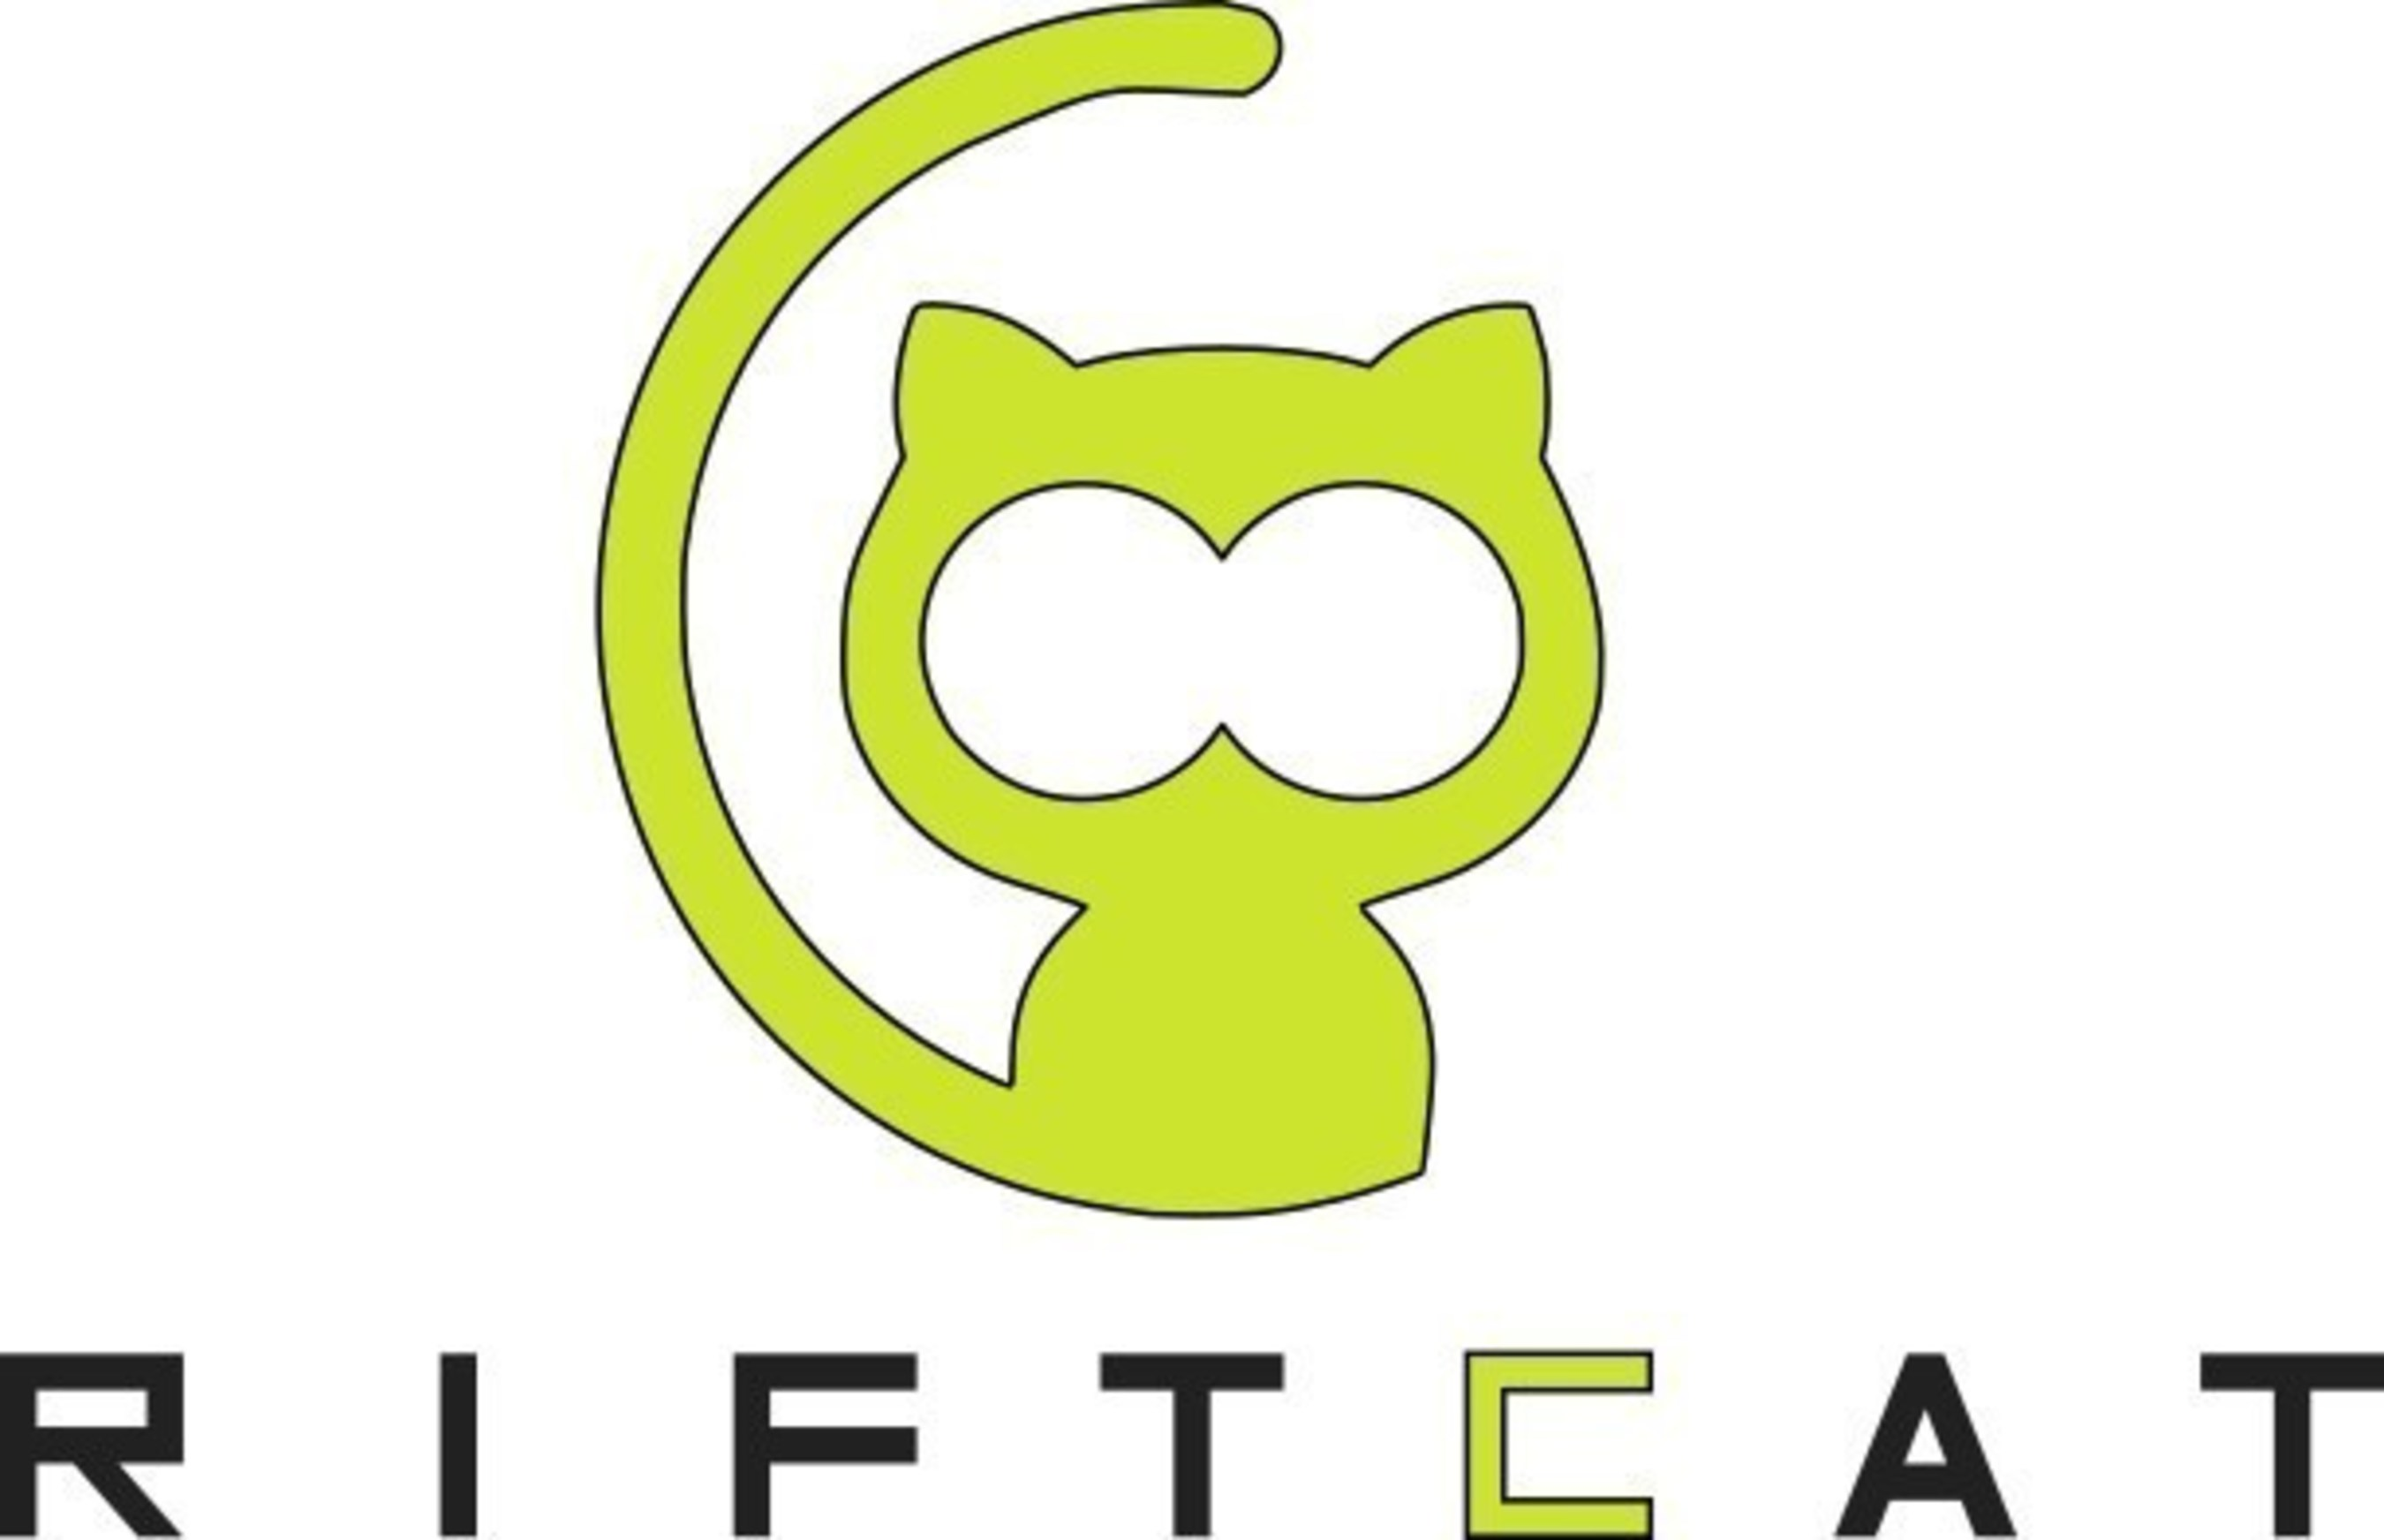 Play Any SteamVR / OpenVR Games on Your Cardboard With RiftCat